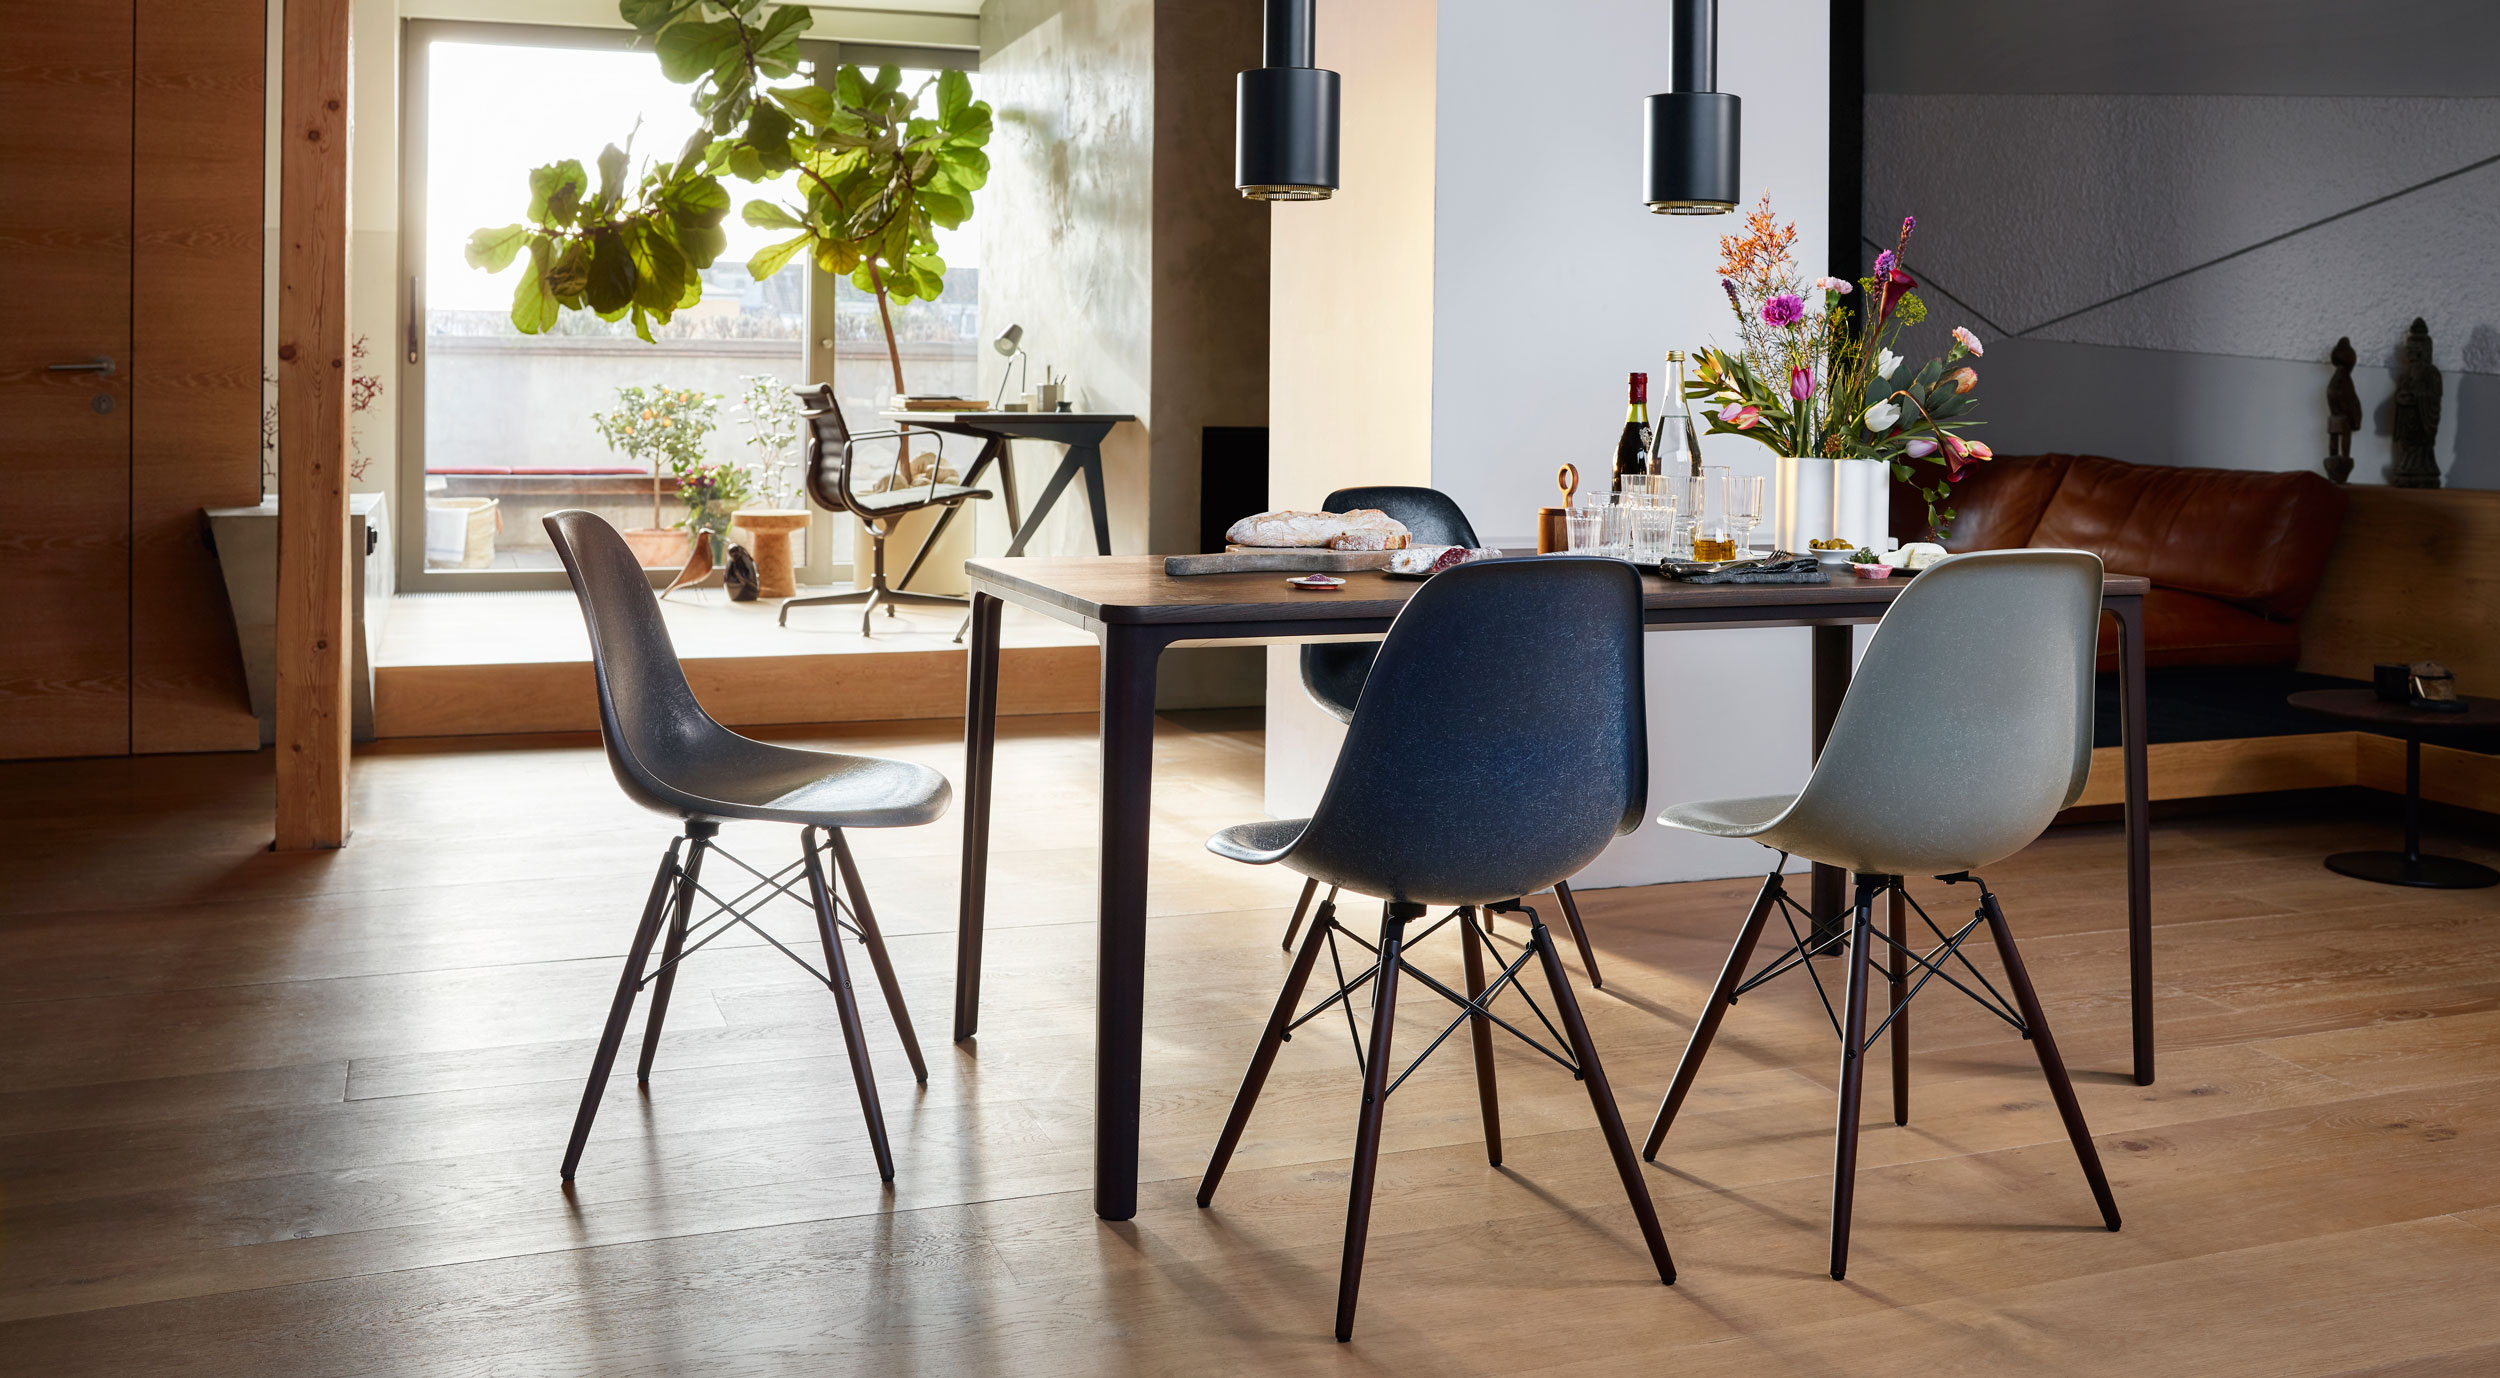 Vitra Eames Fiberglass DSW Chairs with Plate Dining Table